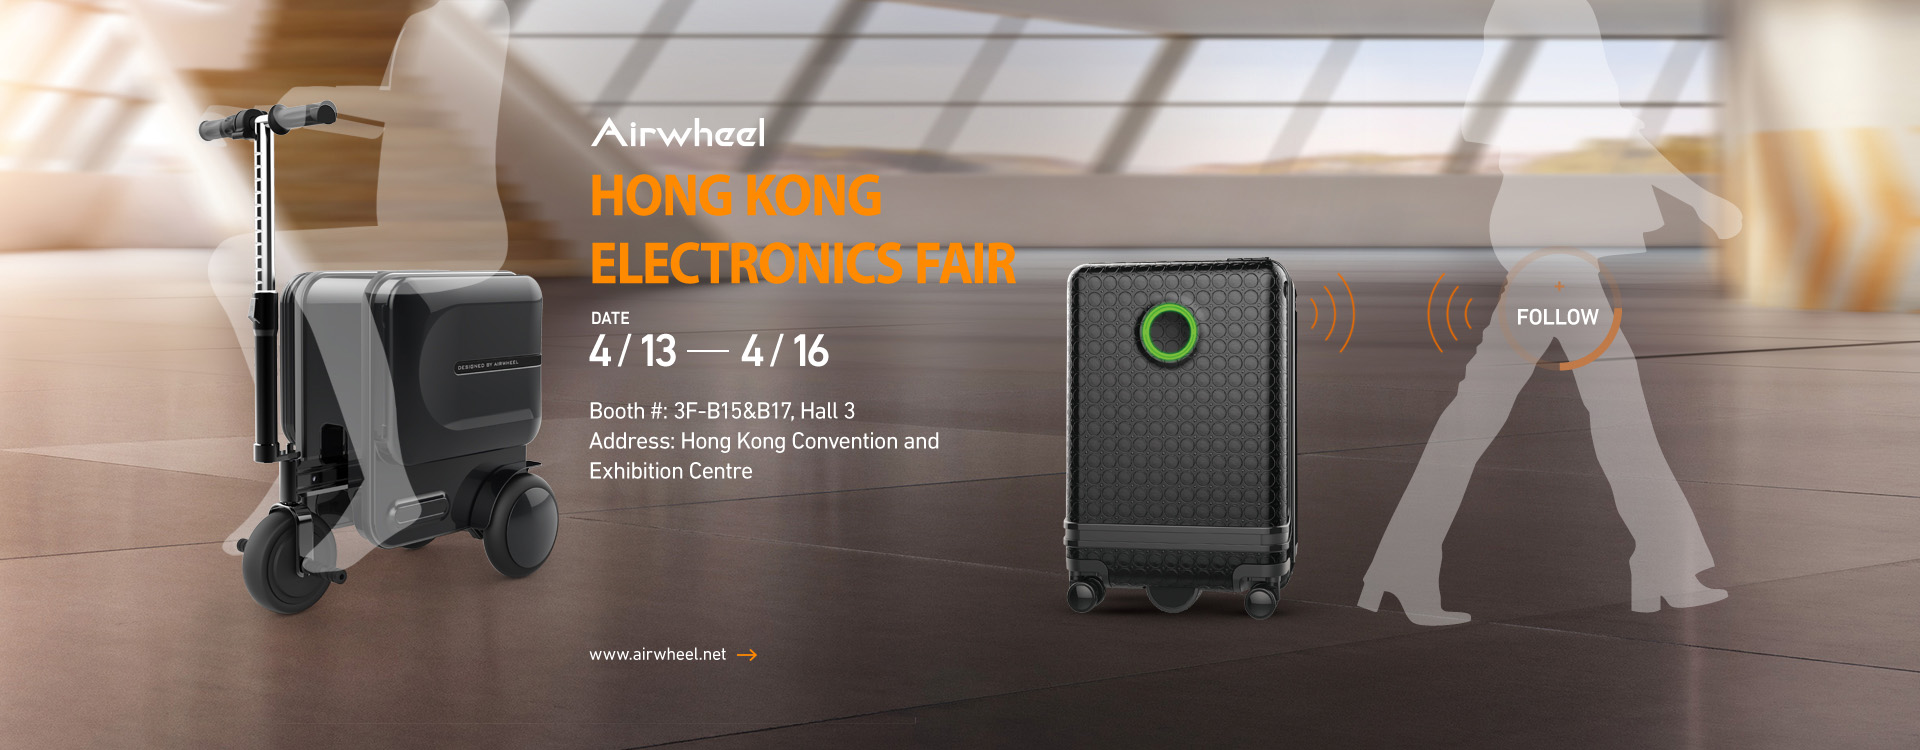 Airwheel HK Electronics Fair